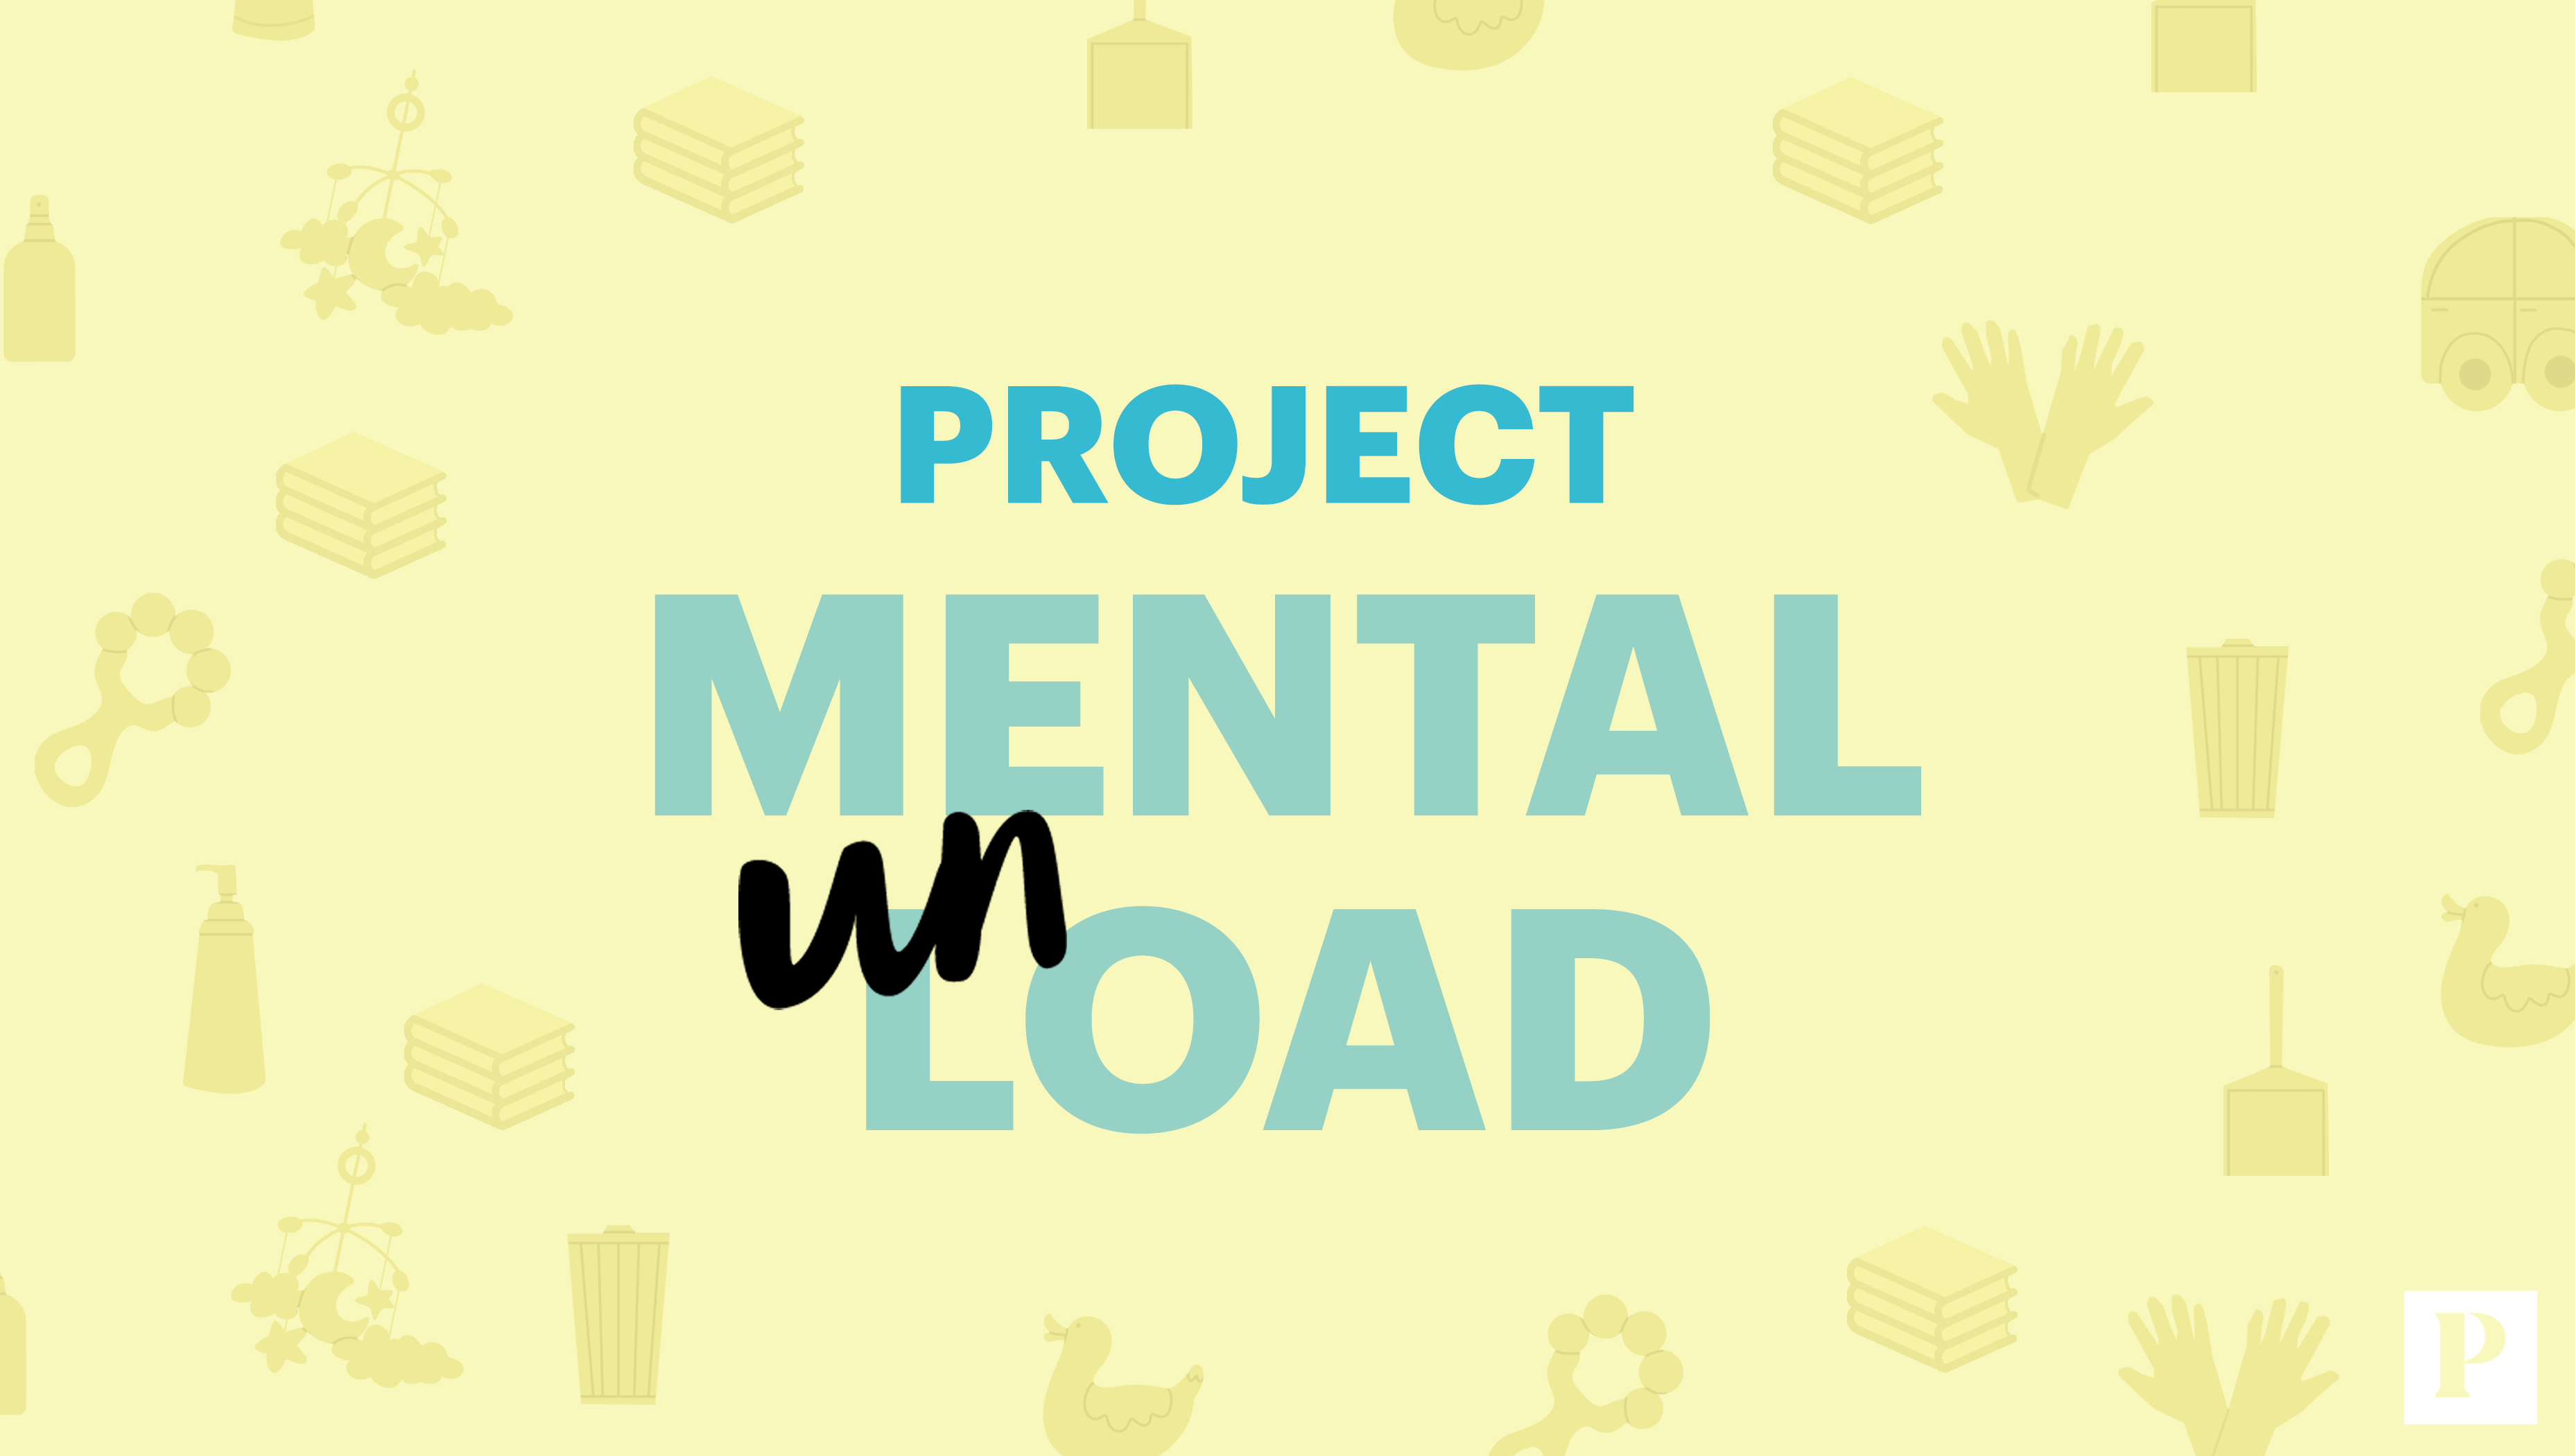 Project Mental UnLoad illustration with Parents watermark